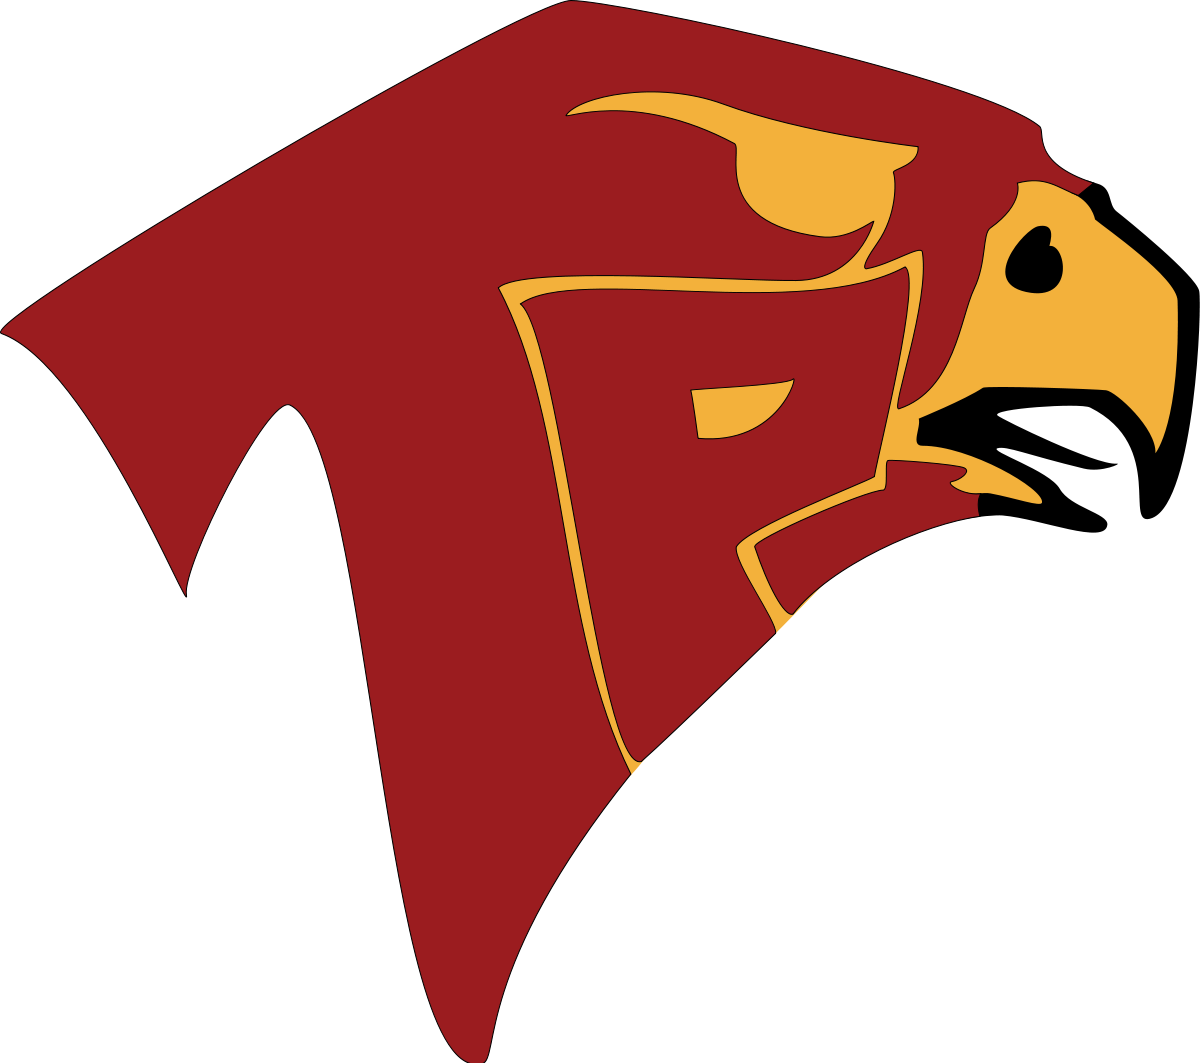 Falcon clipart falcon football. Torrey pines high school